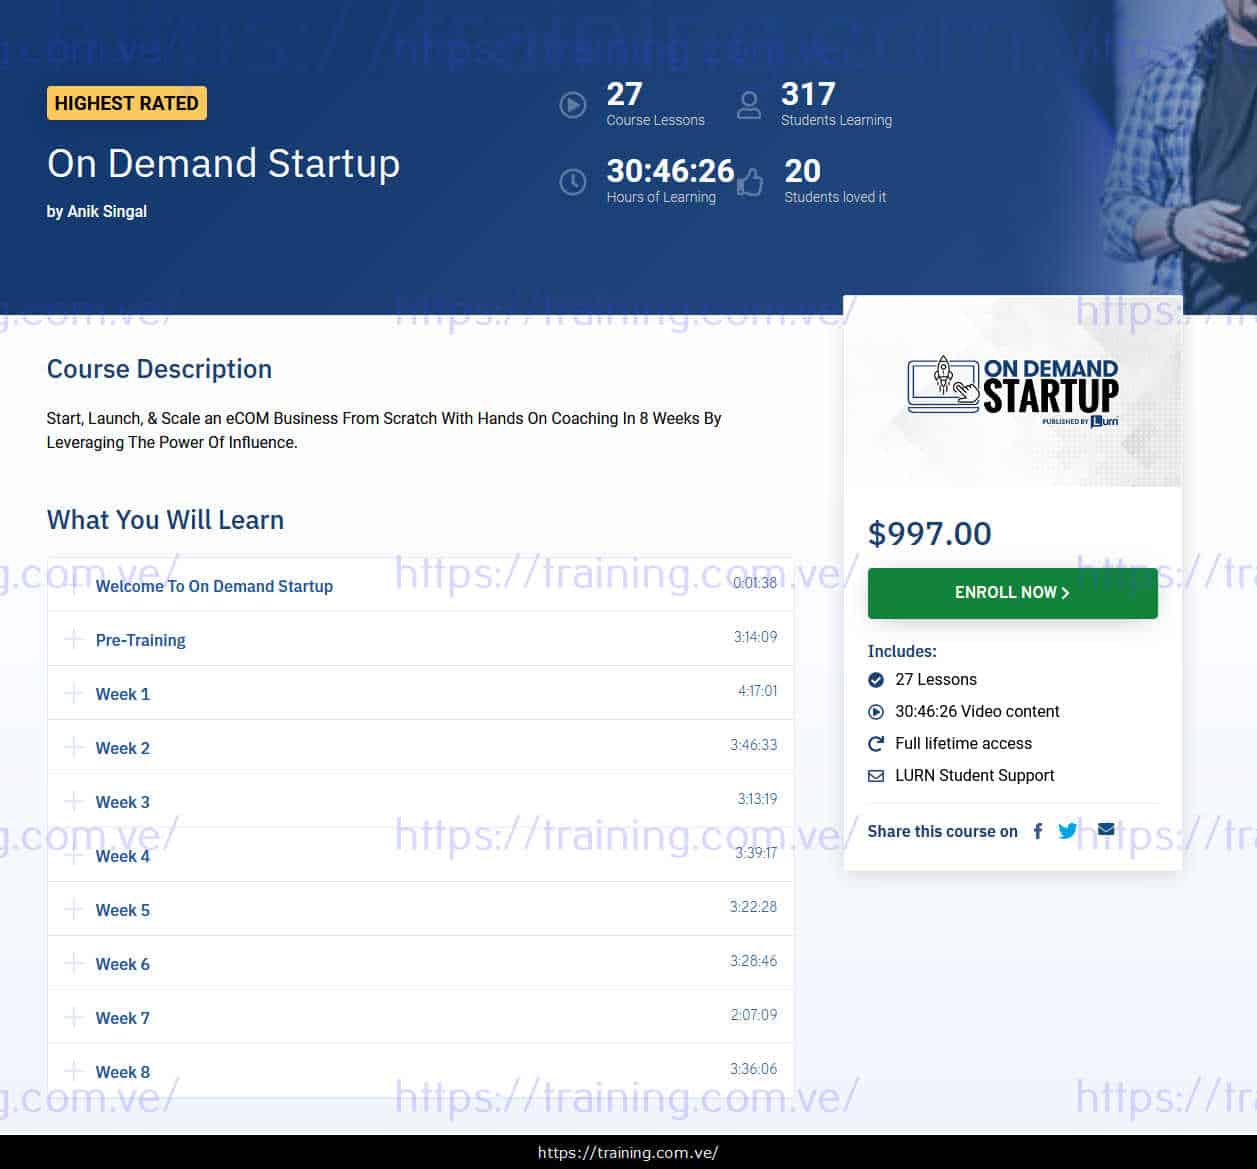 On Demand Startup by Anik Singal sales page